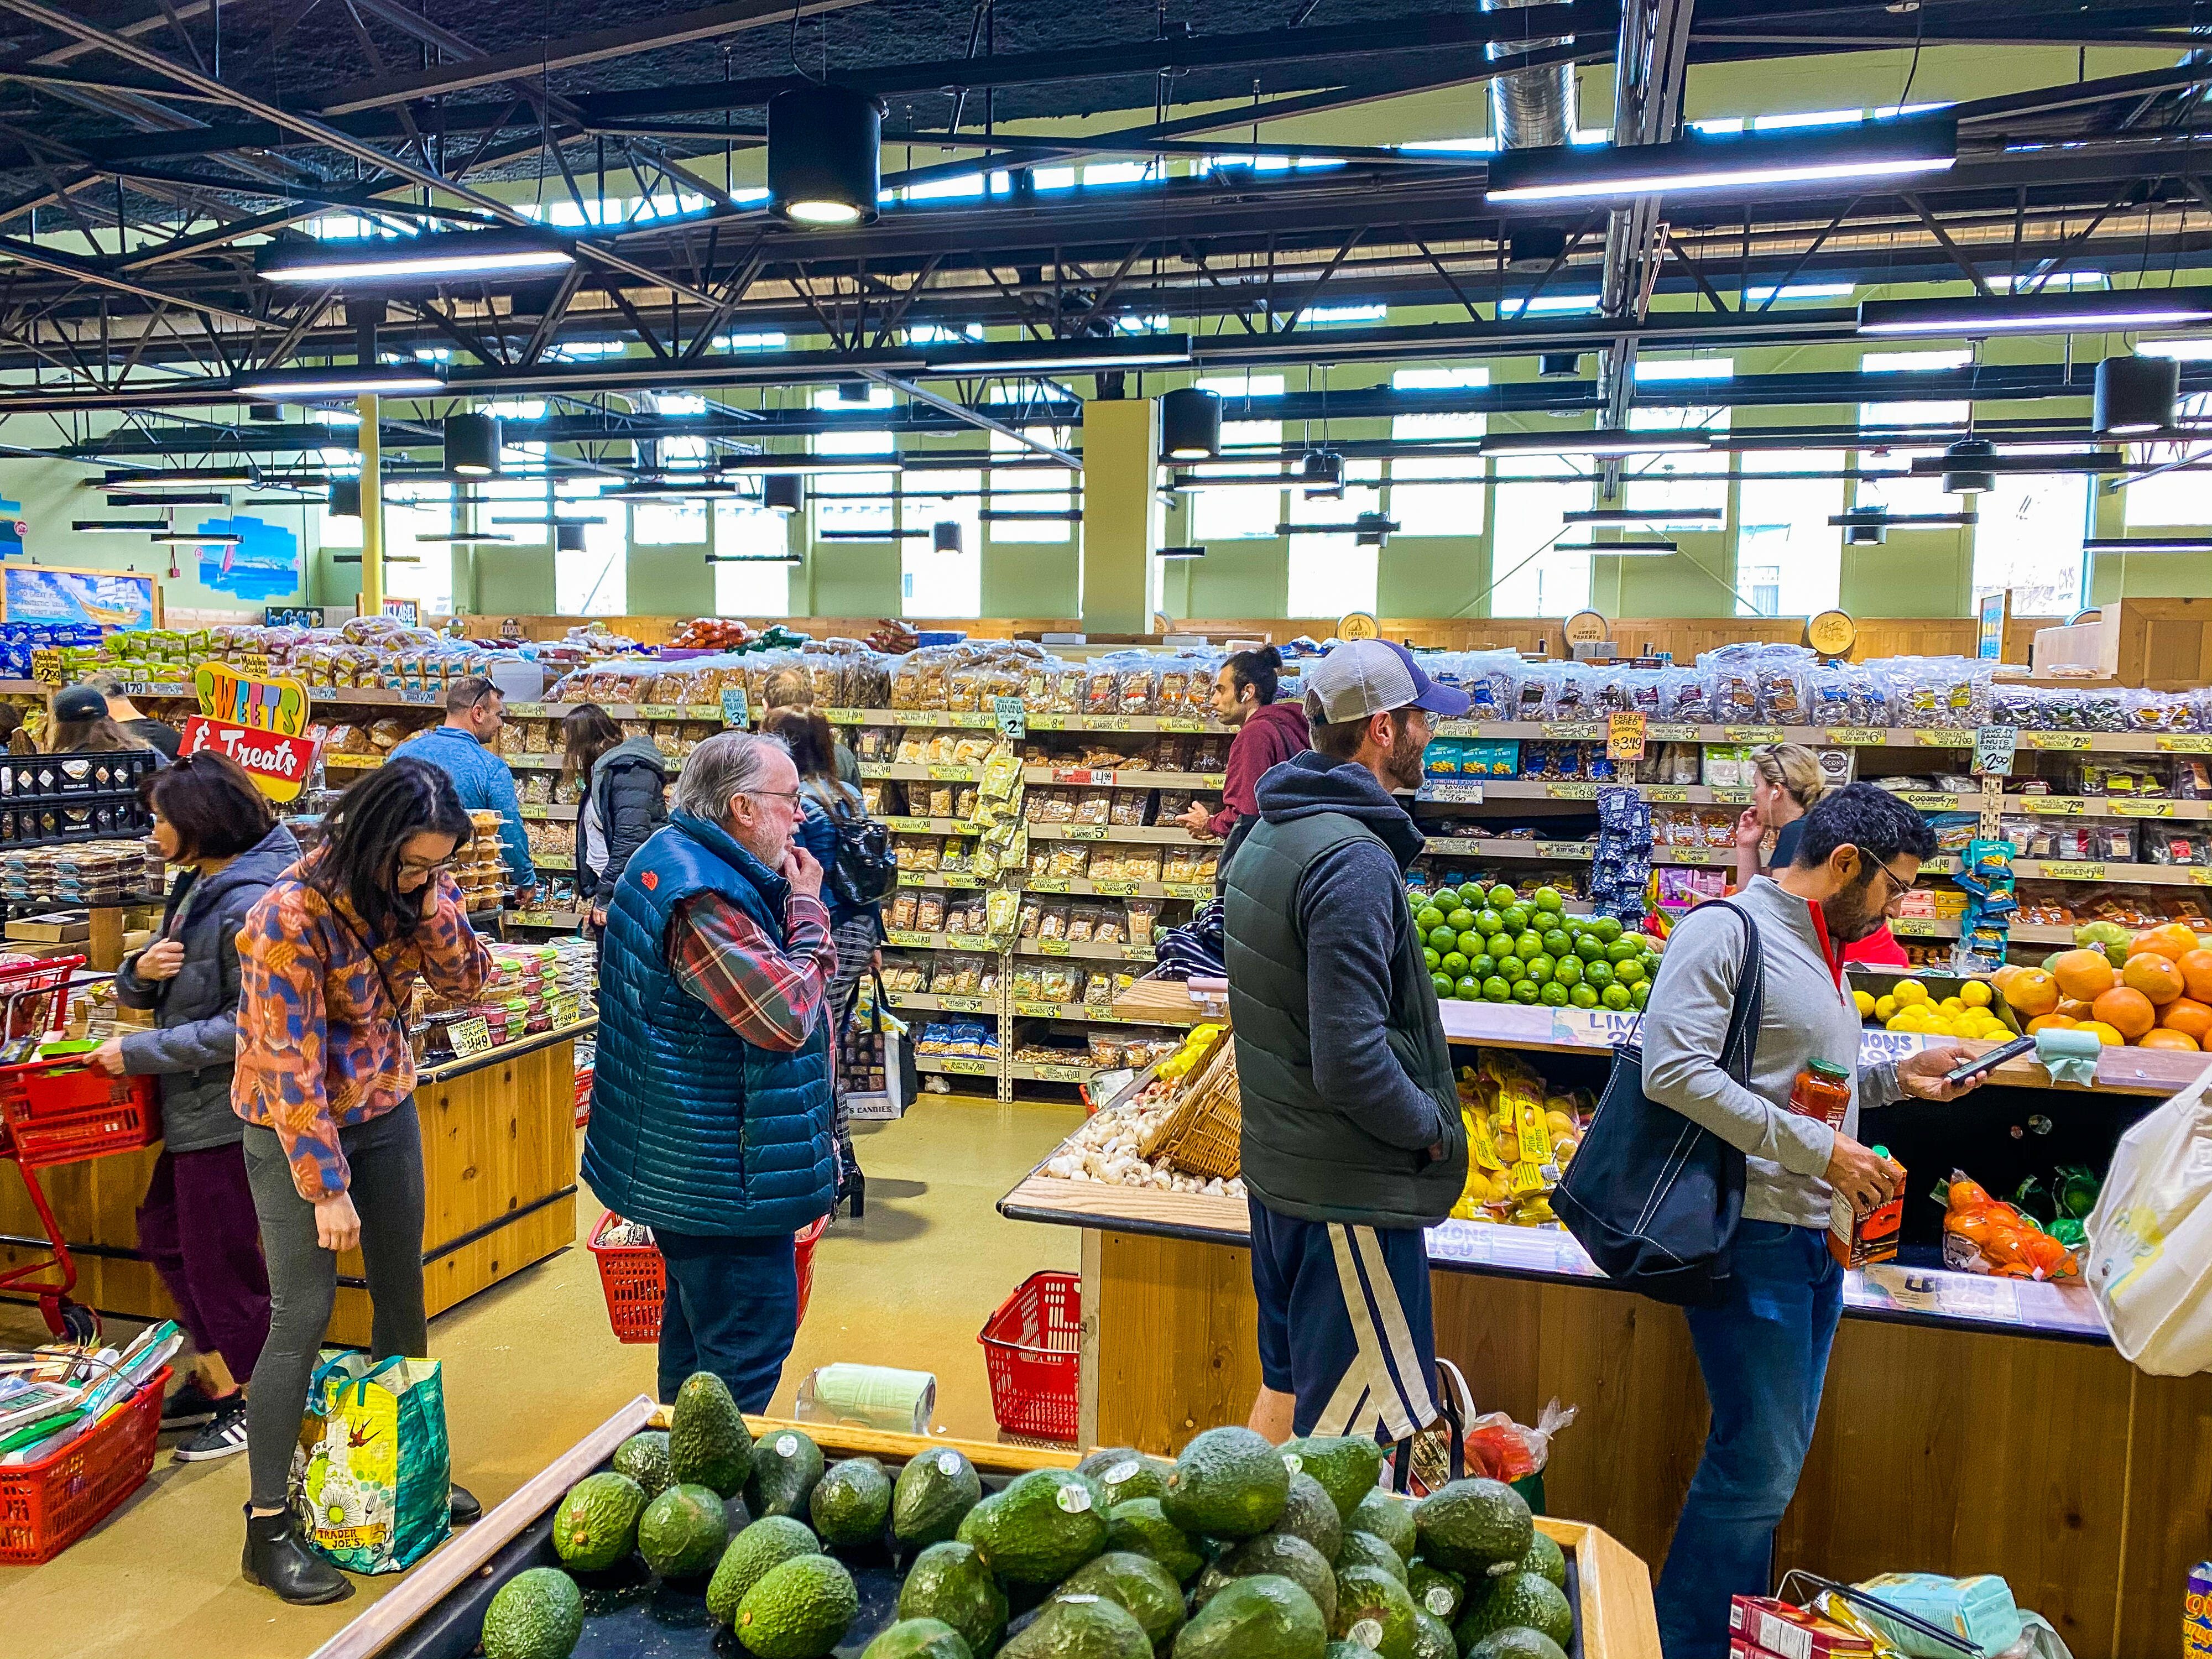 tibken-trader-joe-s-sf-nob-hill-at-8-am-friday-only-thing-in-stock-was-produce